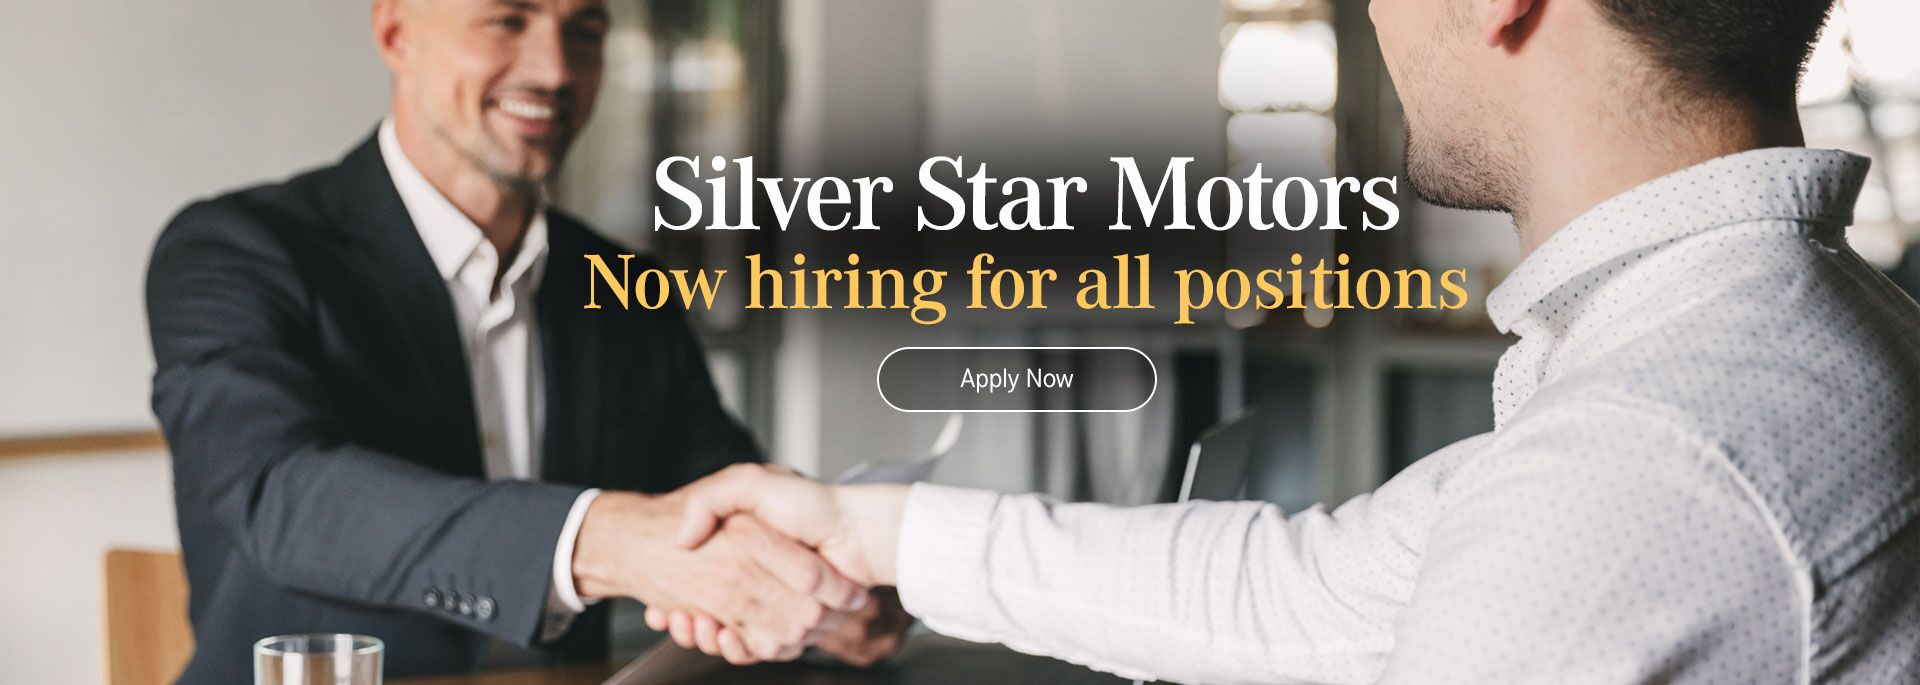 Silver Star Motors Hiring